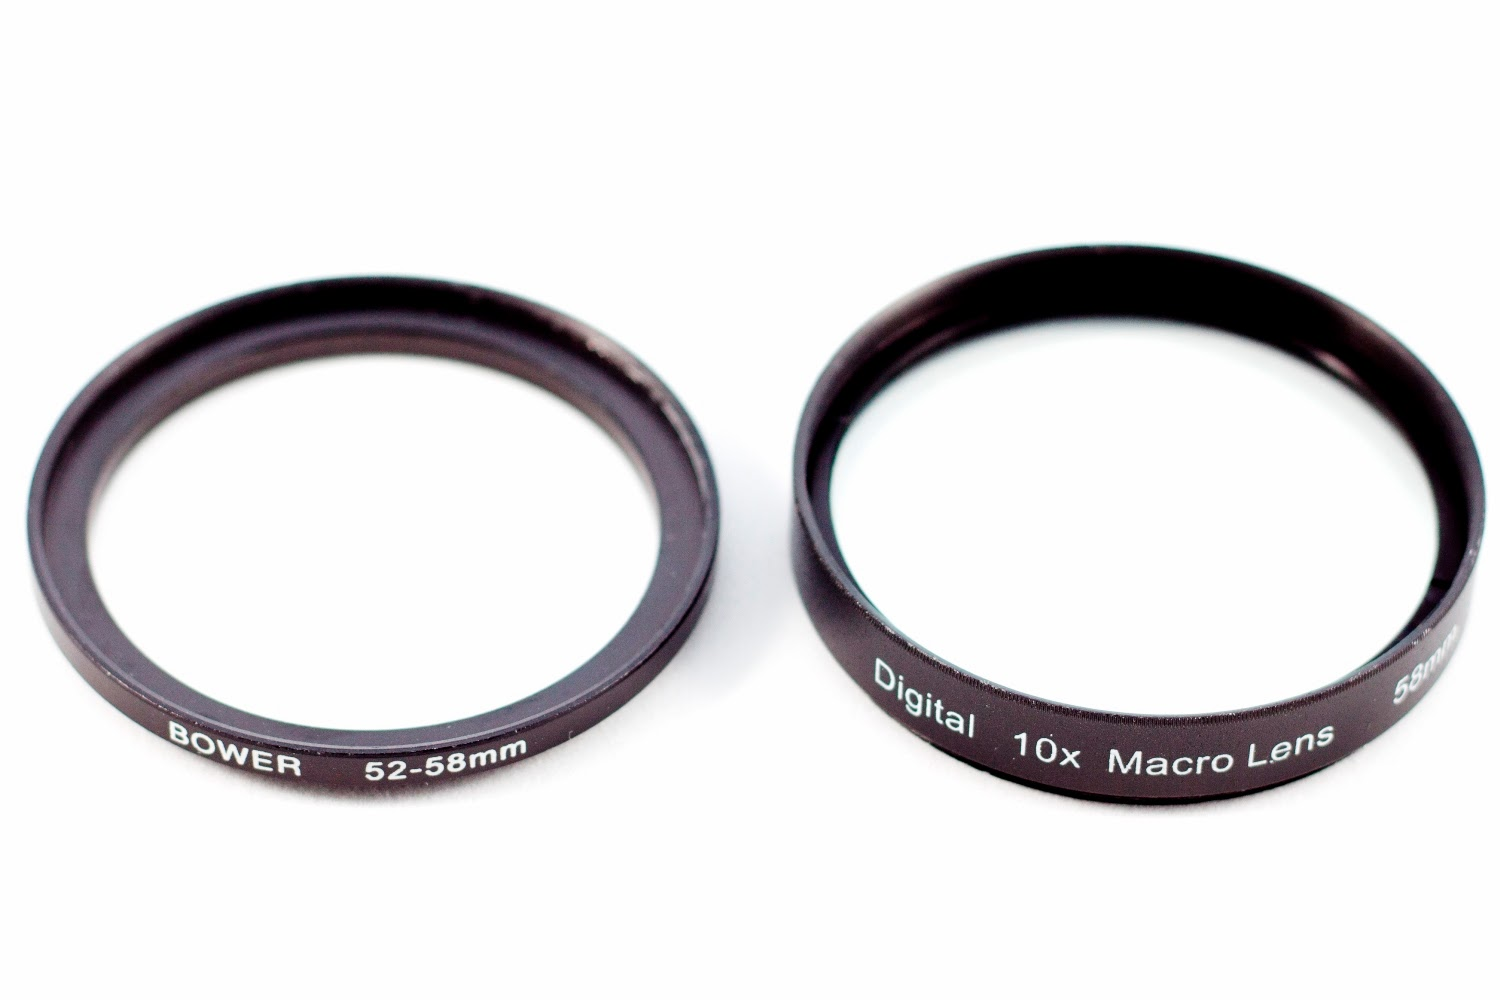 Step-Up Adapter and 10x Macro Close-Up Lens | Boost Your Photography